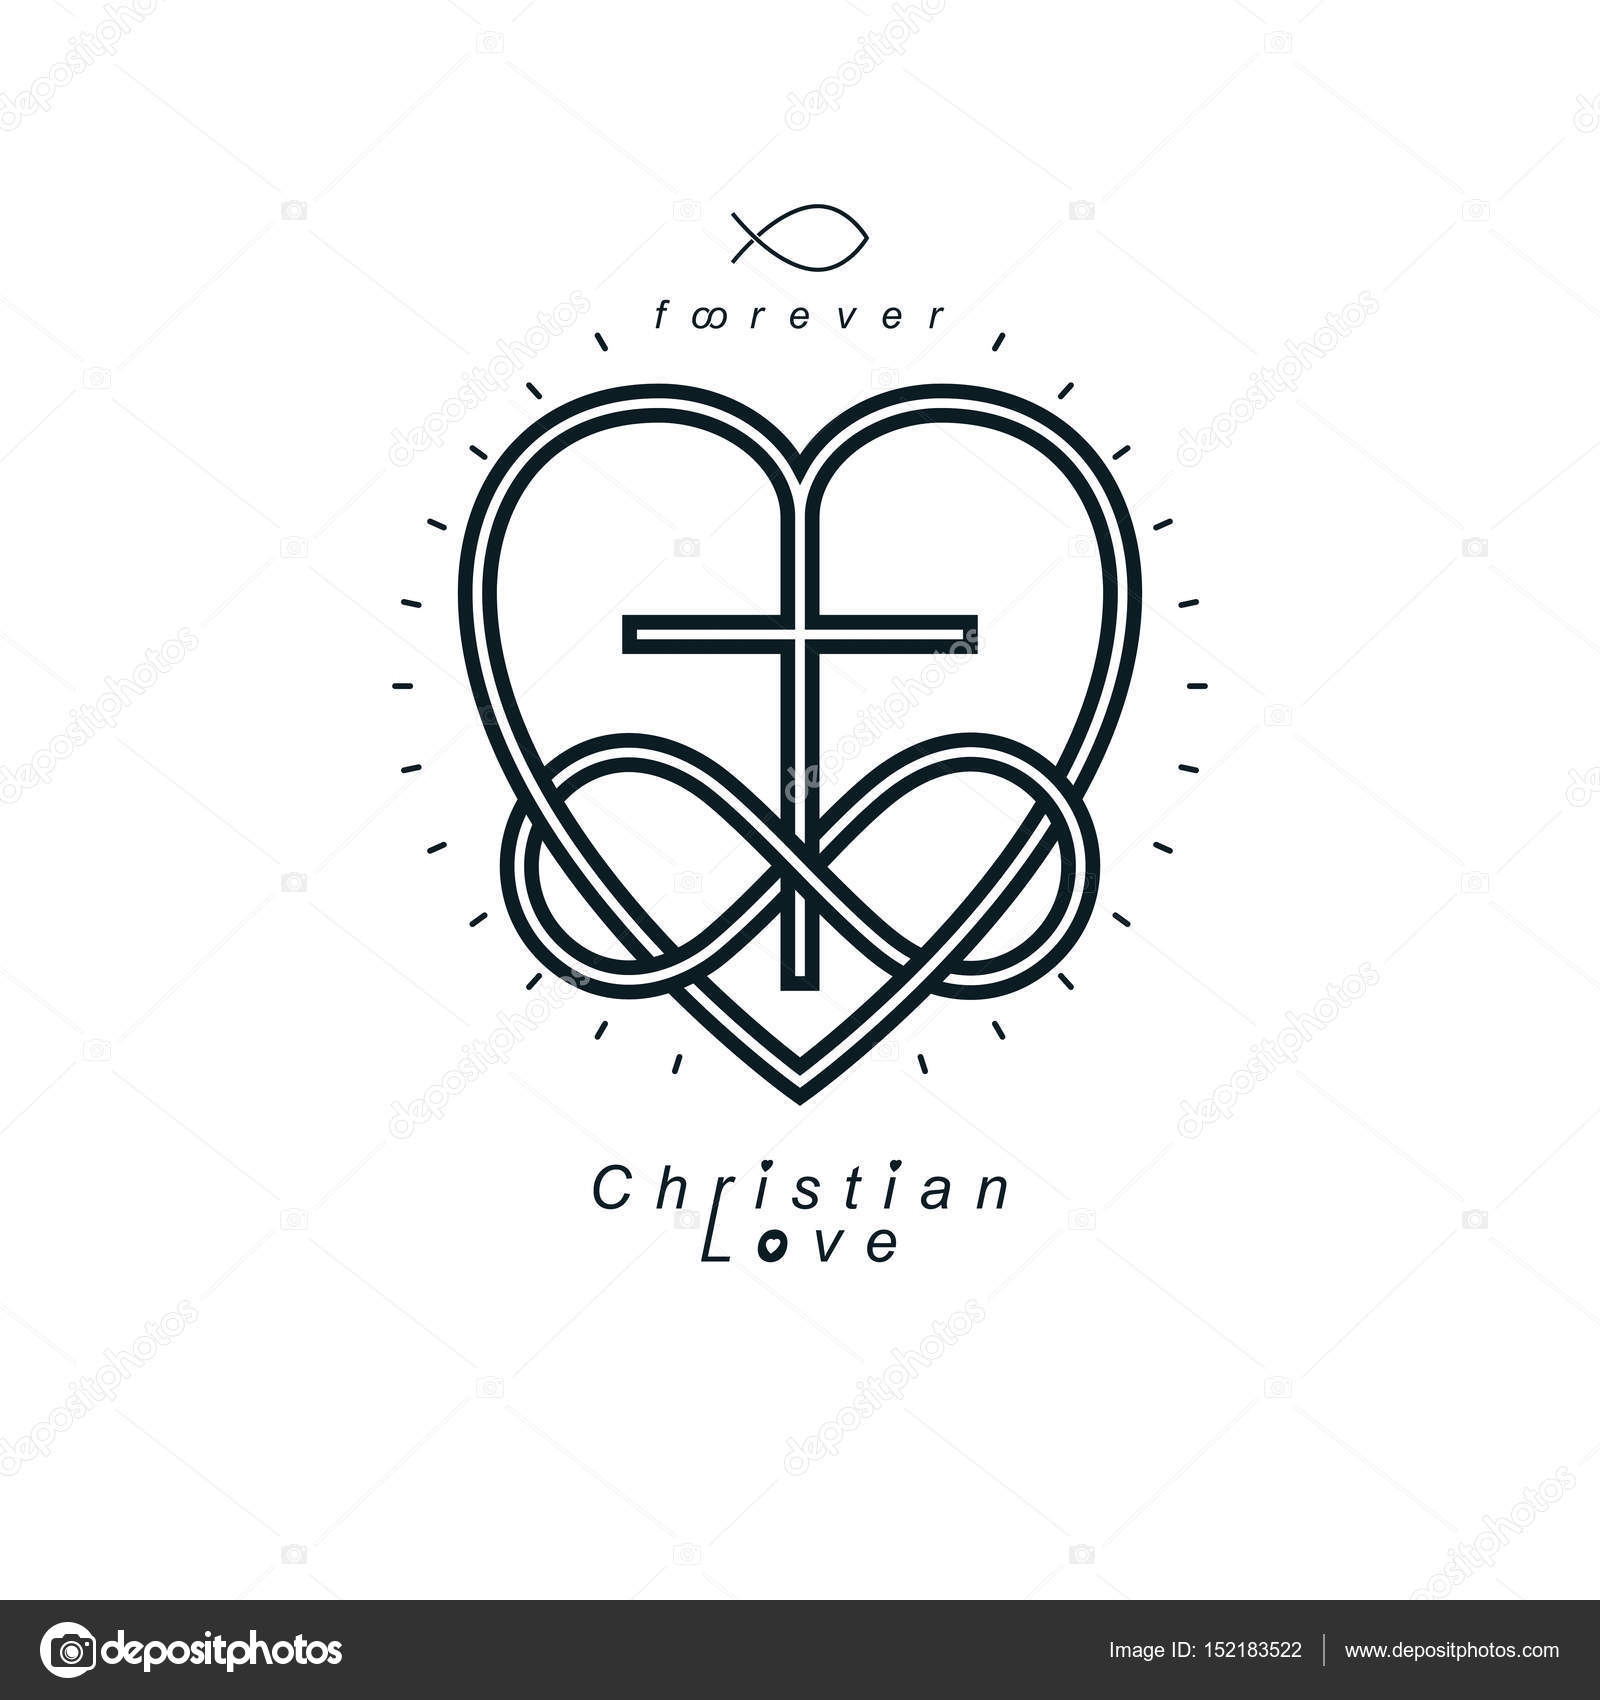 True infinite christian love and belief in god stock vector true infinite christian love and belief in god vector creative symbol design combined with infinity eternal loop and christian cross vector logo or sign biocorpaavc Images